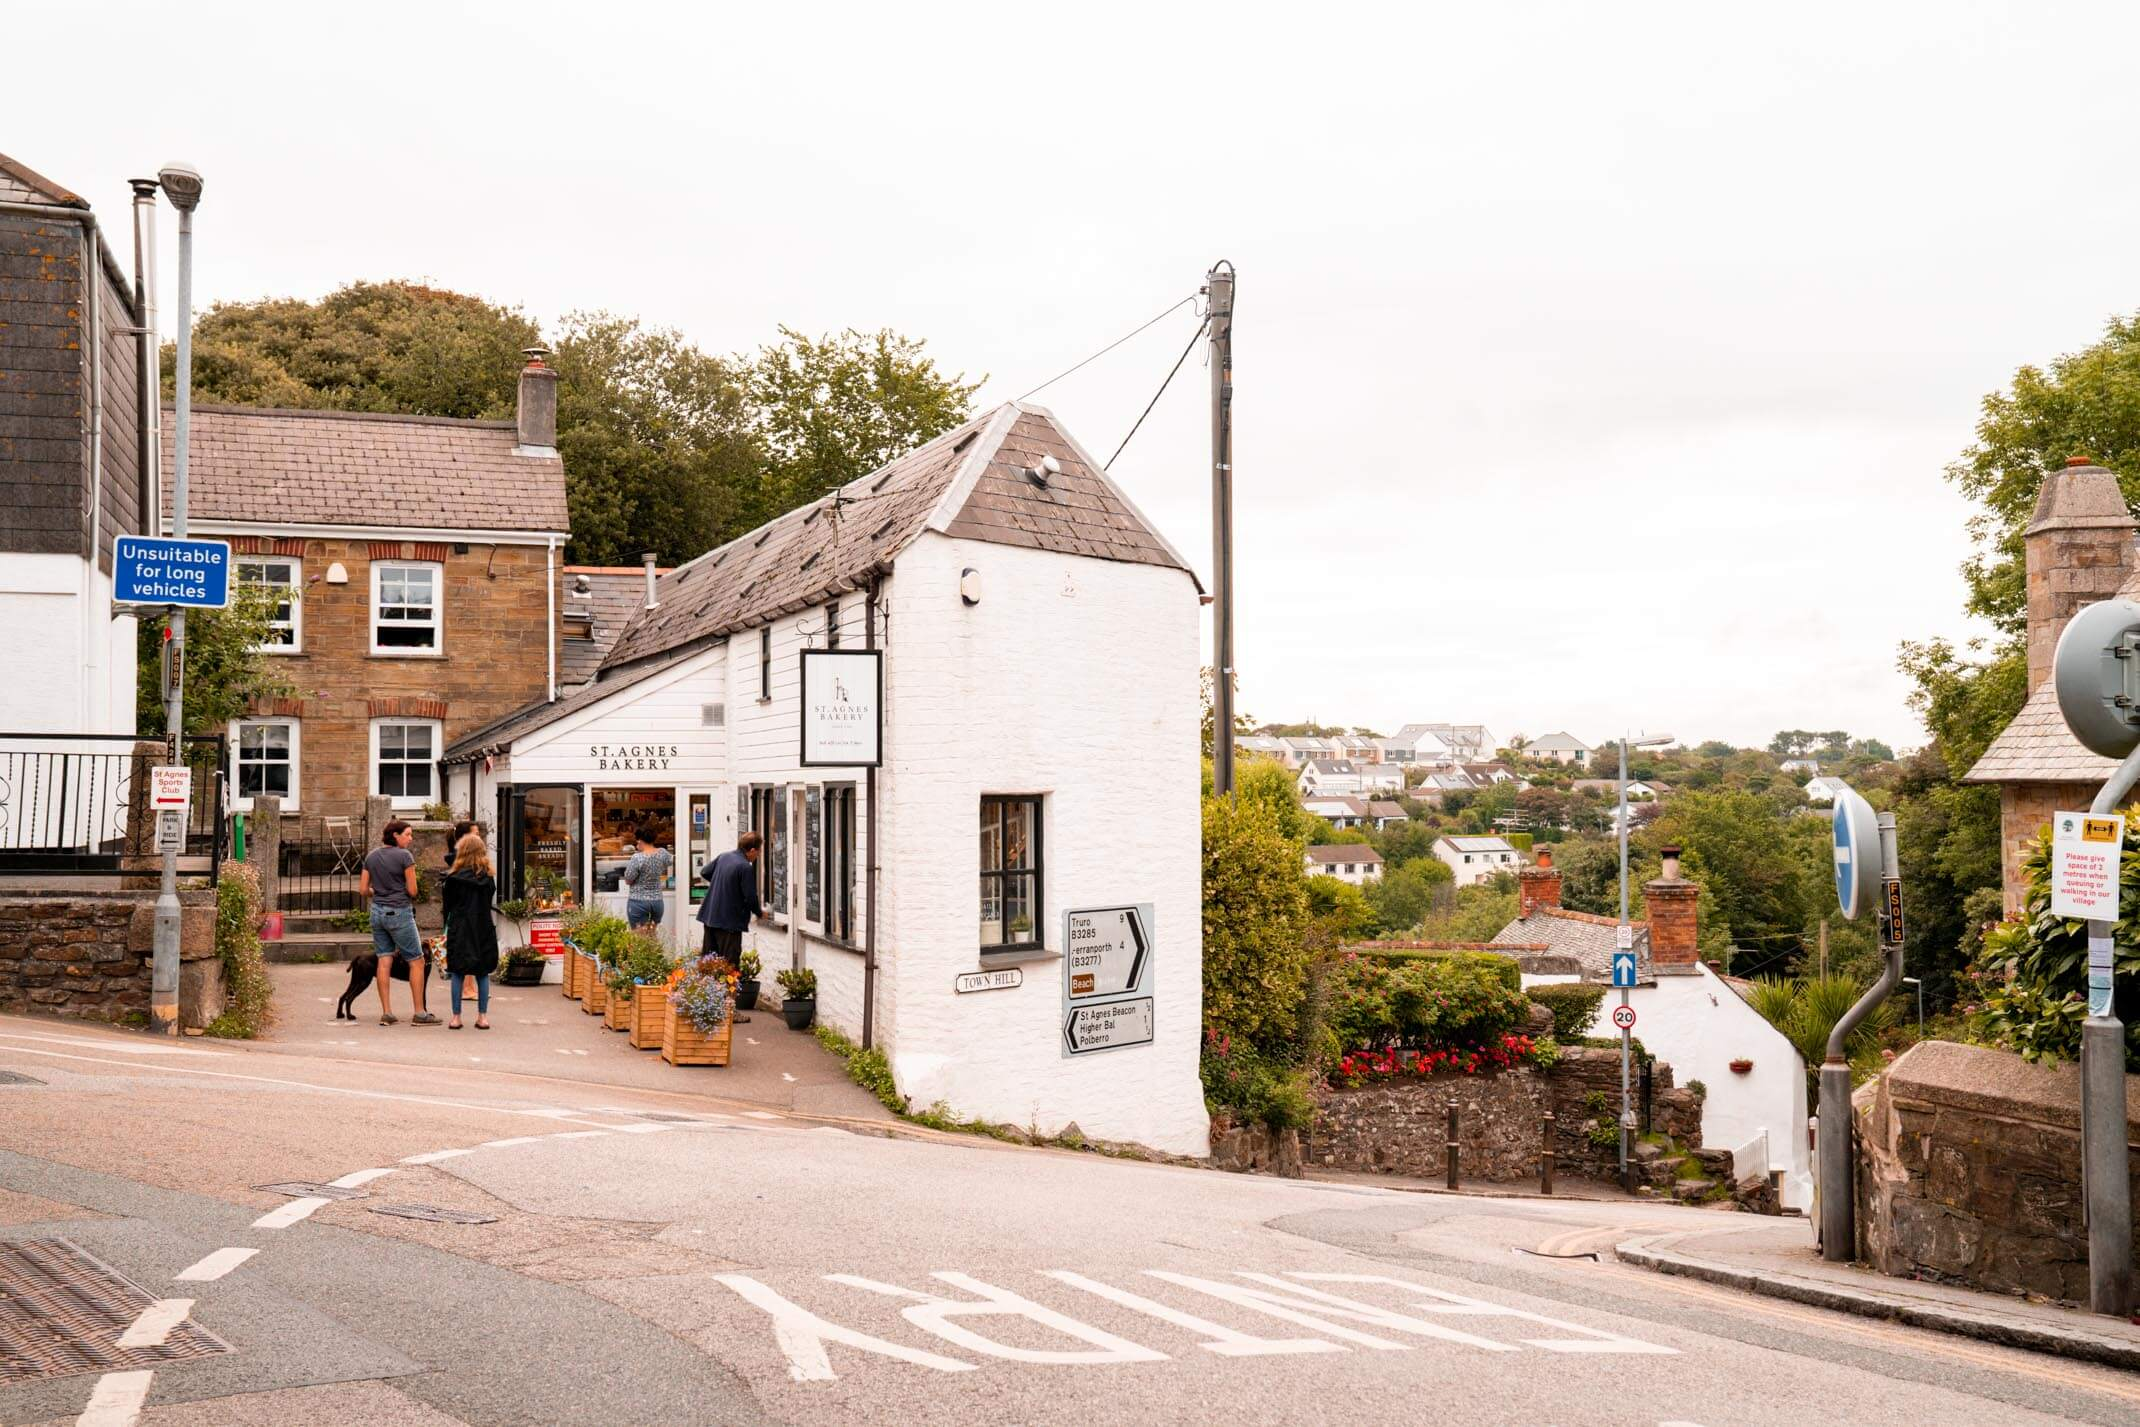 St Agnes: A guide to the most beautiful towns in Cornwall, England